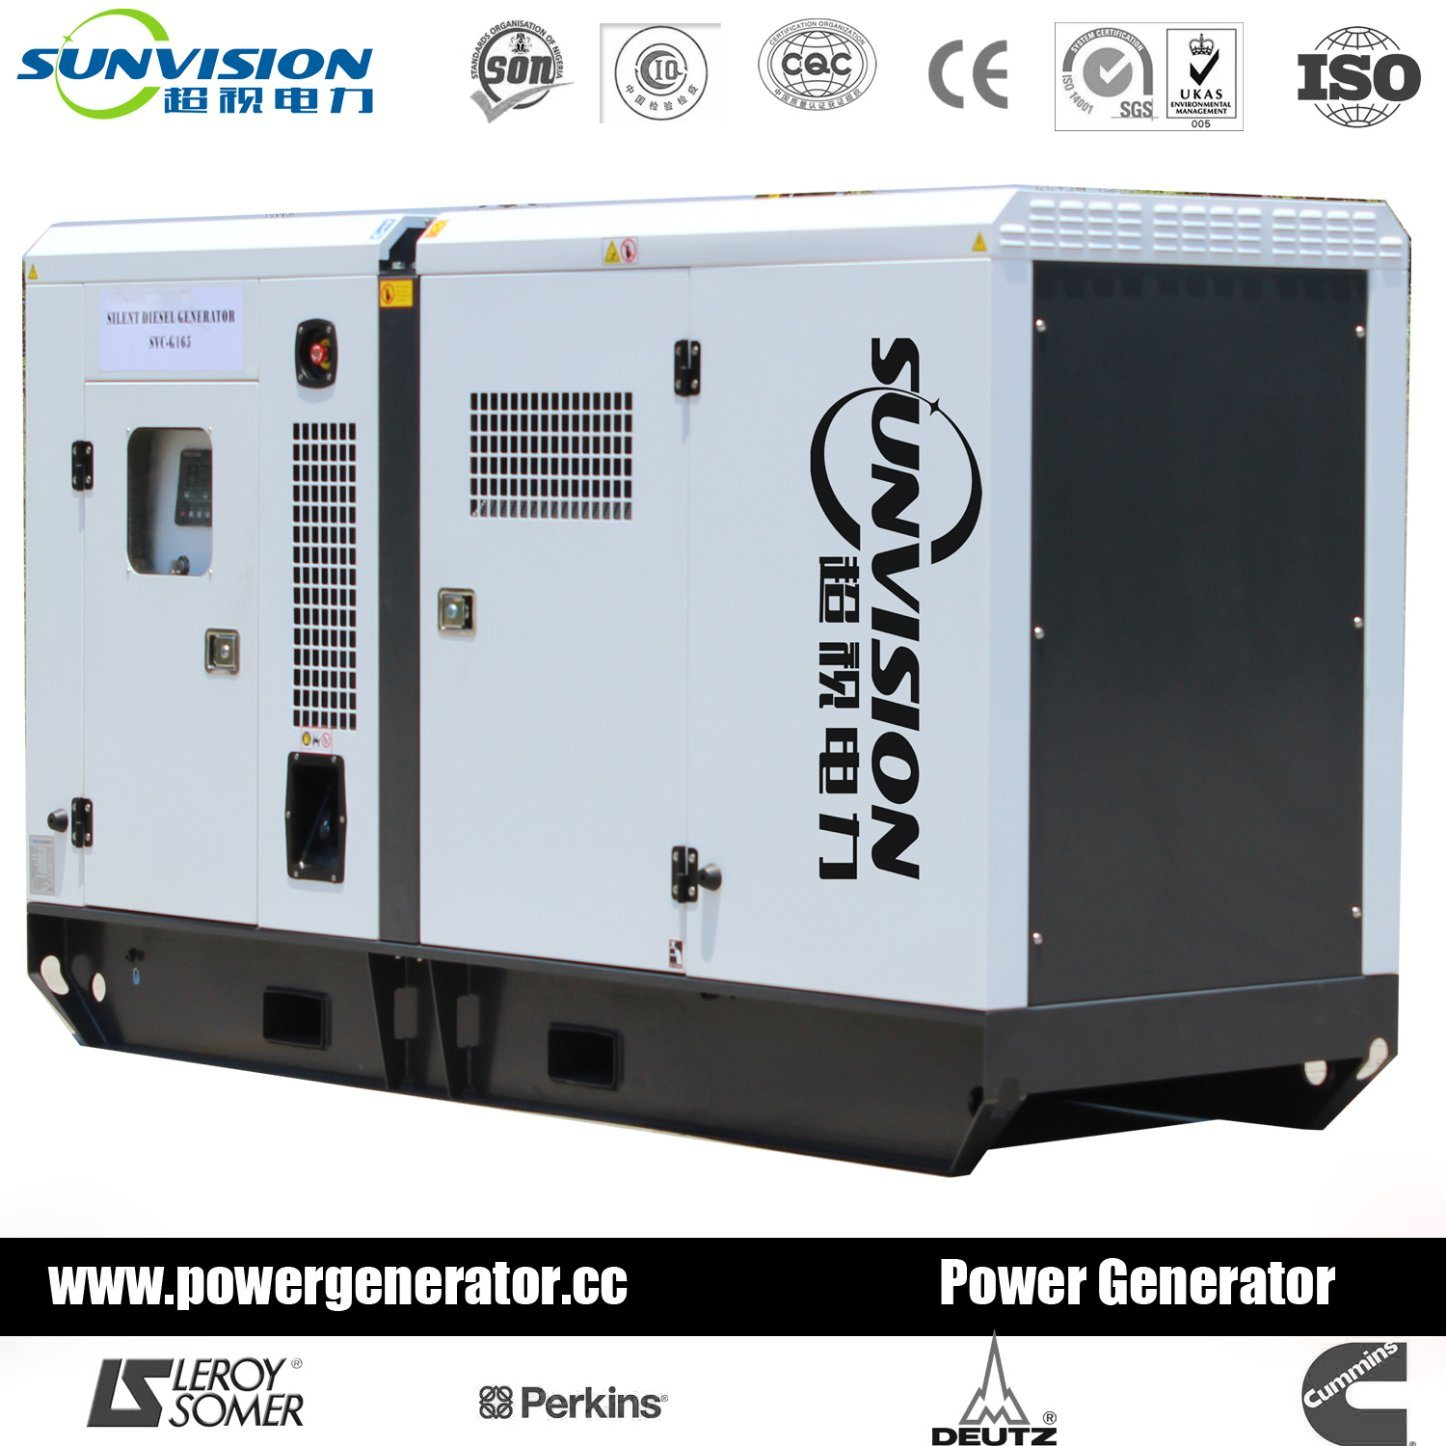 Super Silent 10kVA Diesel Genset with Perkins Engine